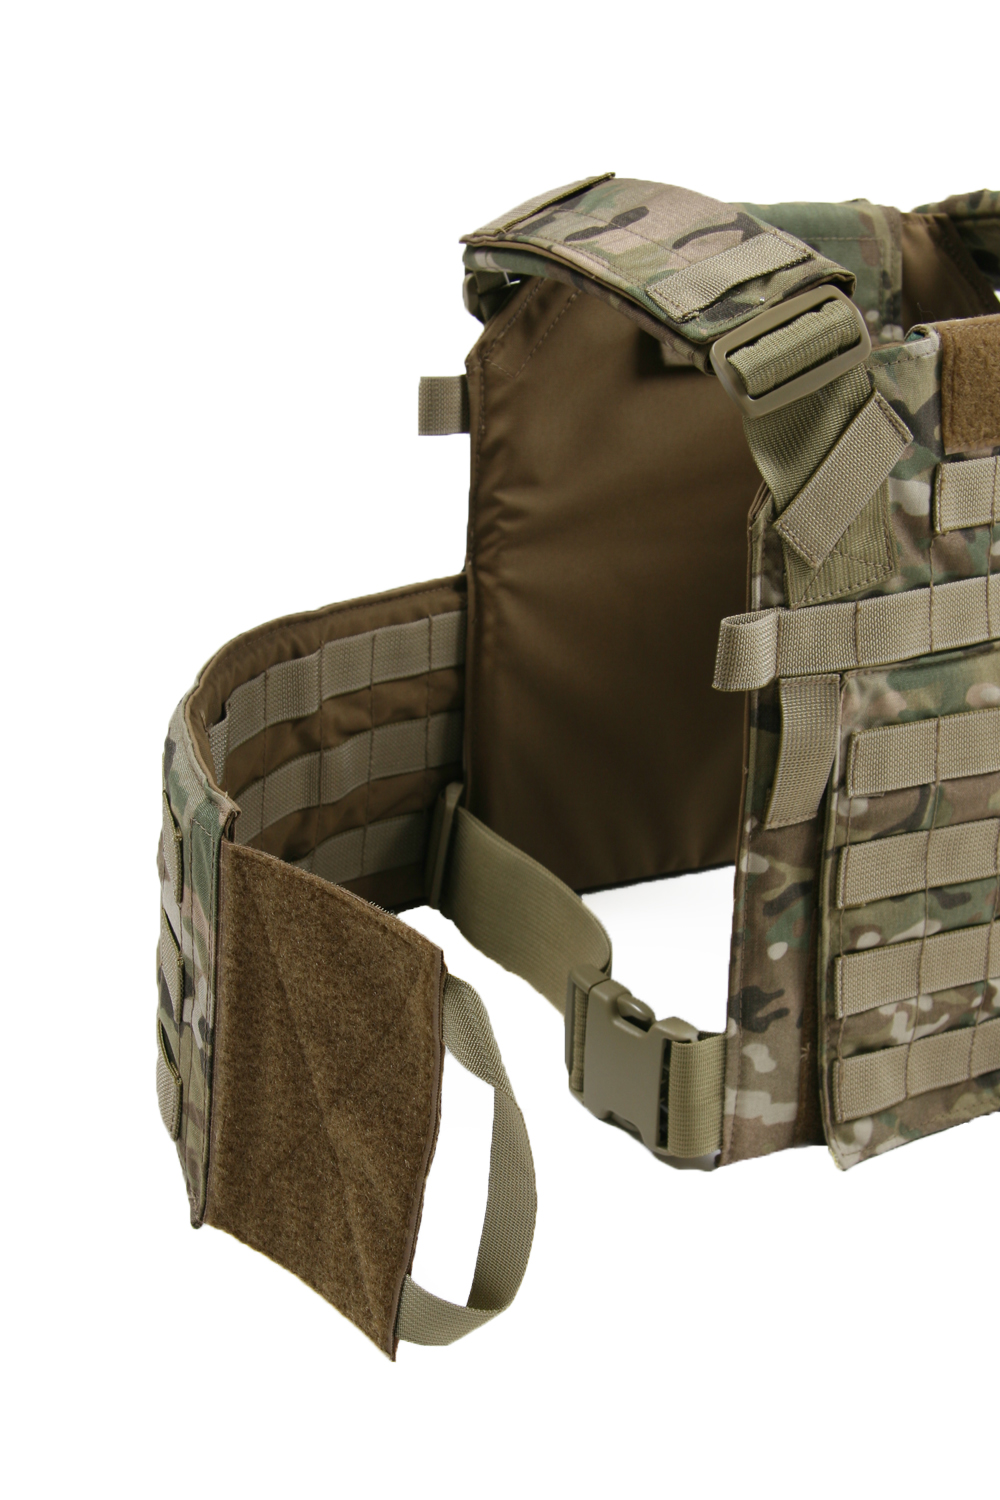 Tactical Gear And Military Clothing News May 2011